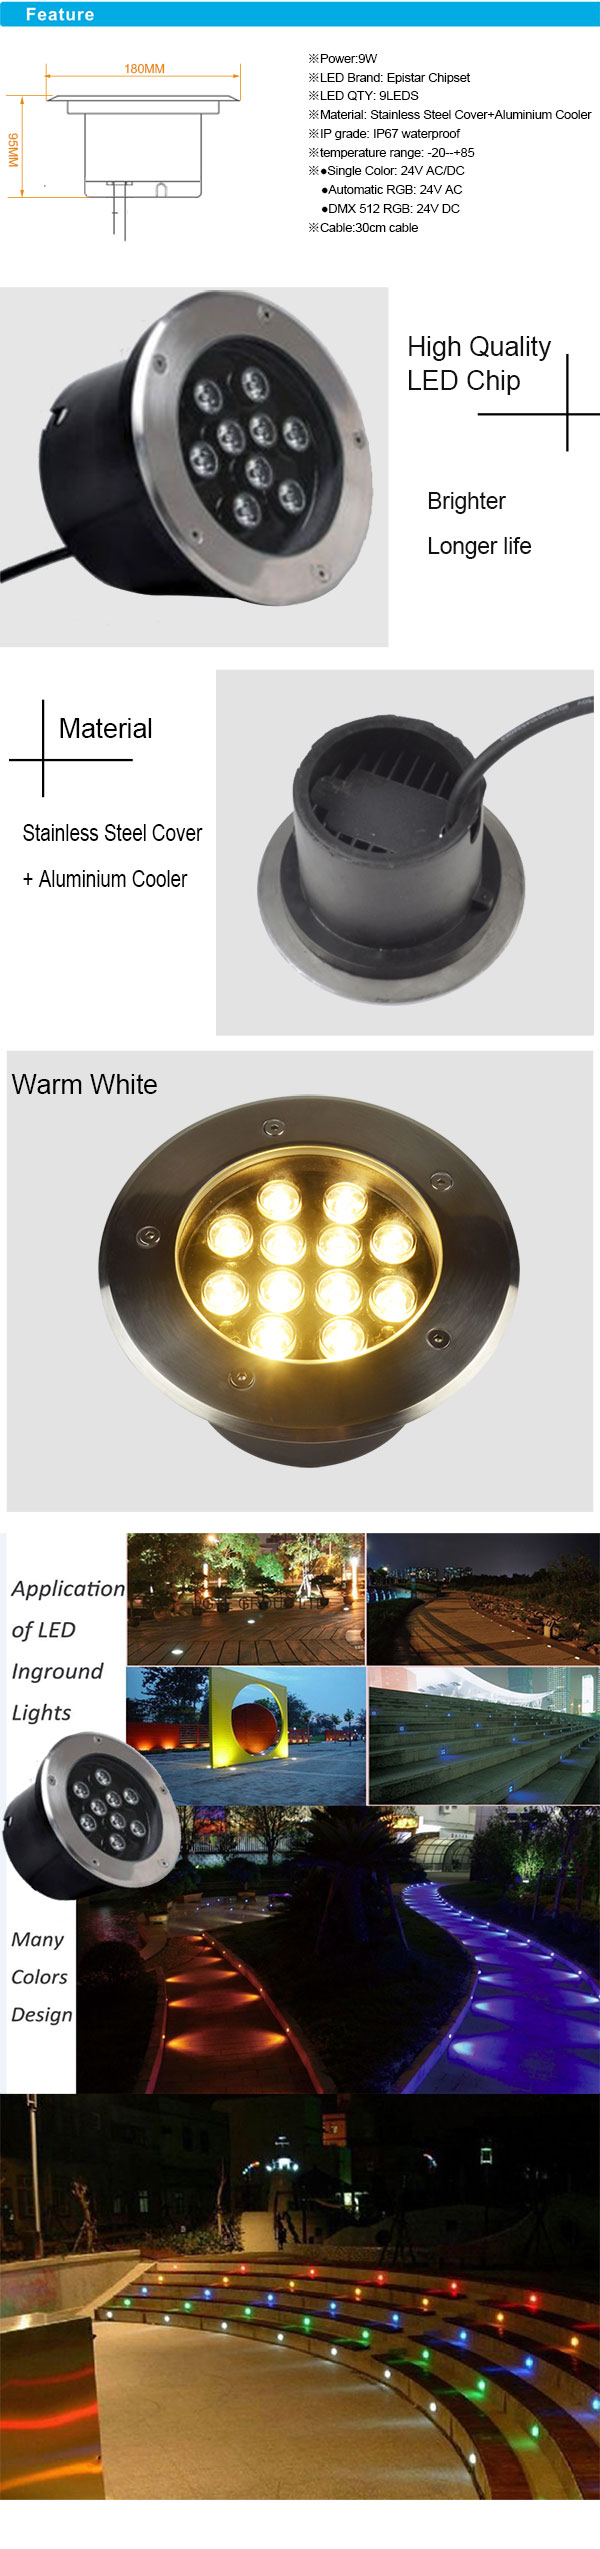 9W IP67 Stainless Steel RGB LED Inground with Aluminum Cooler